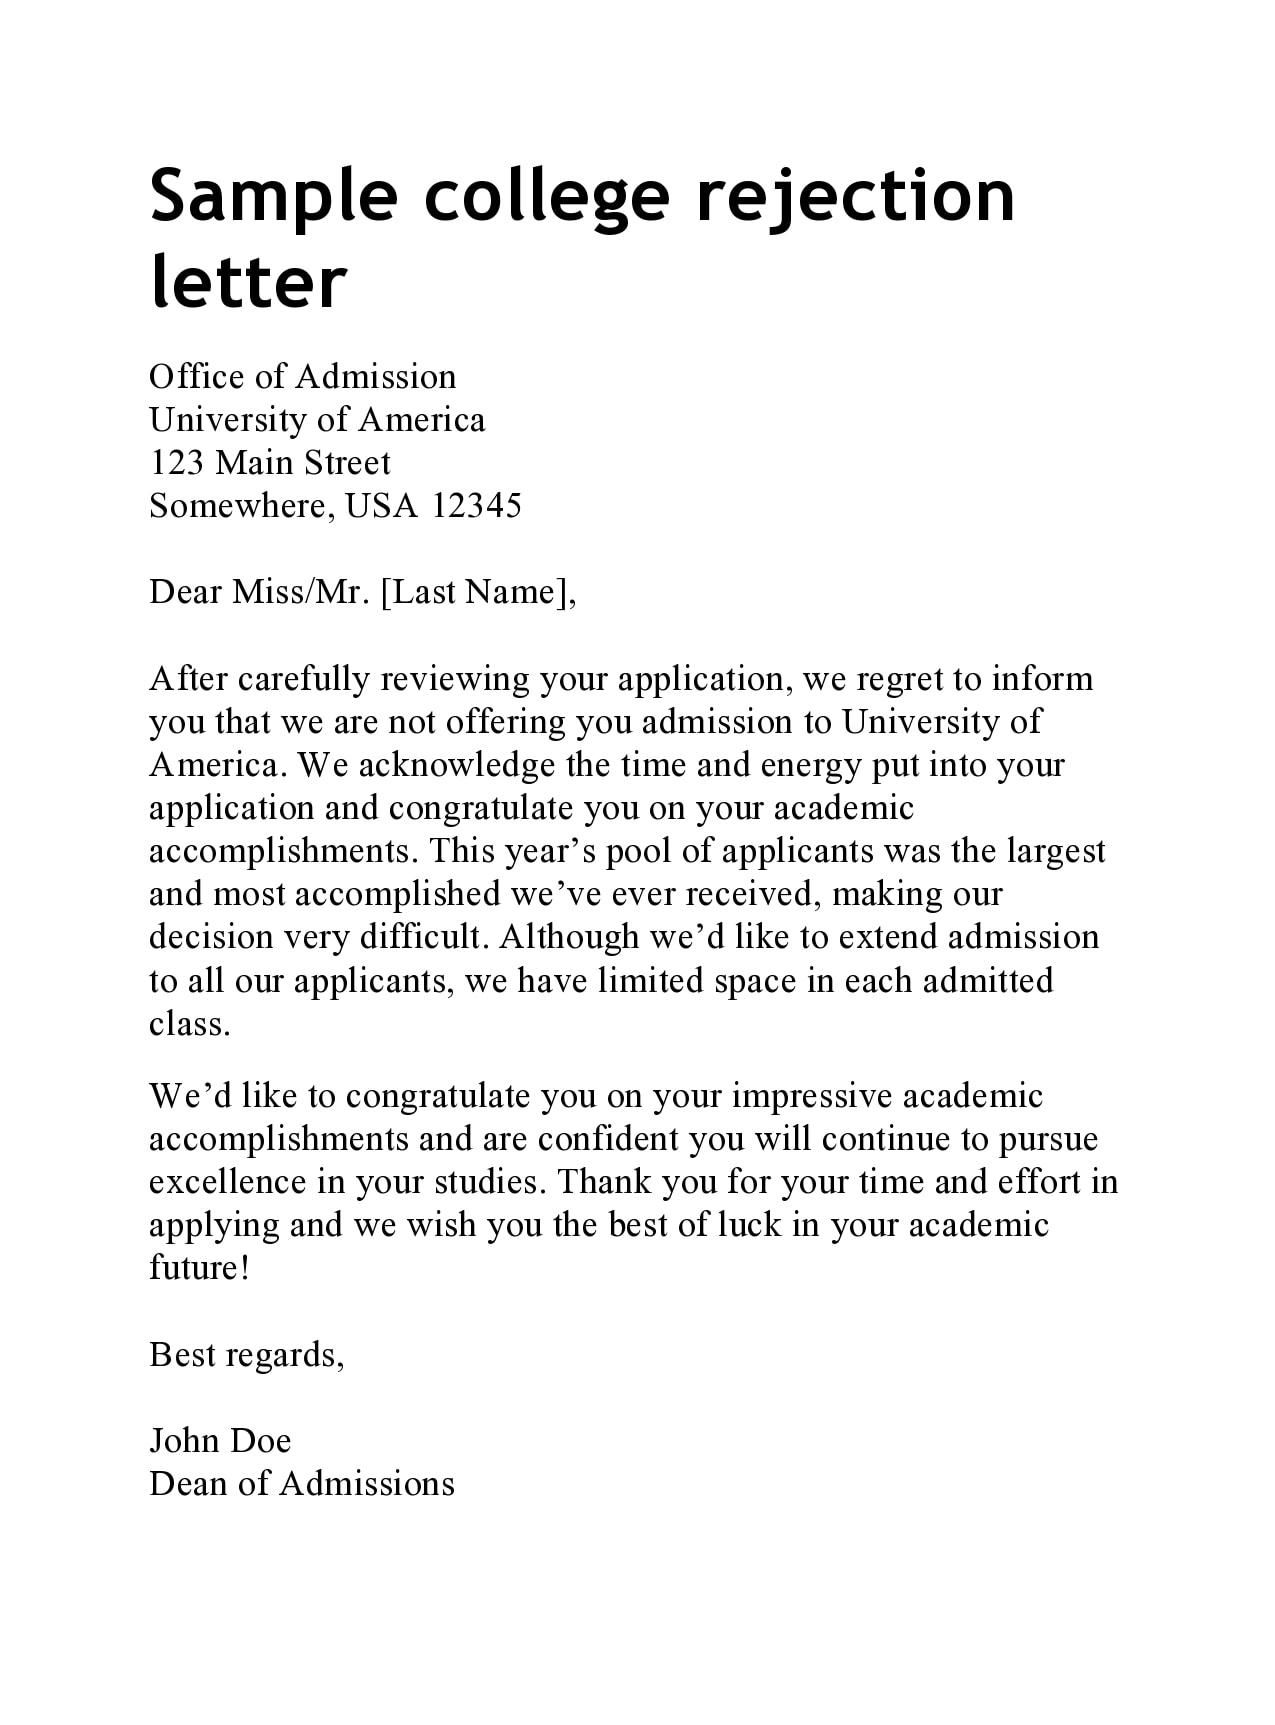 college rejection letter 02